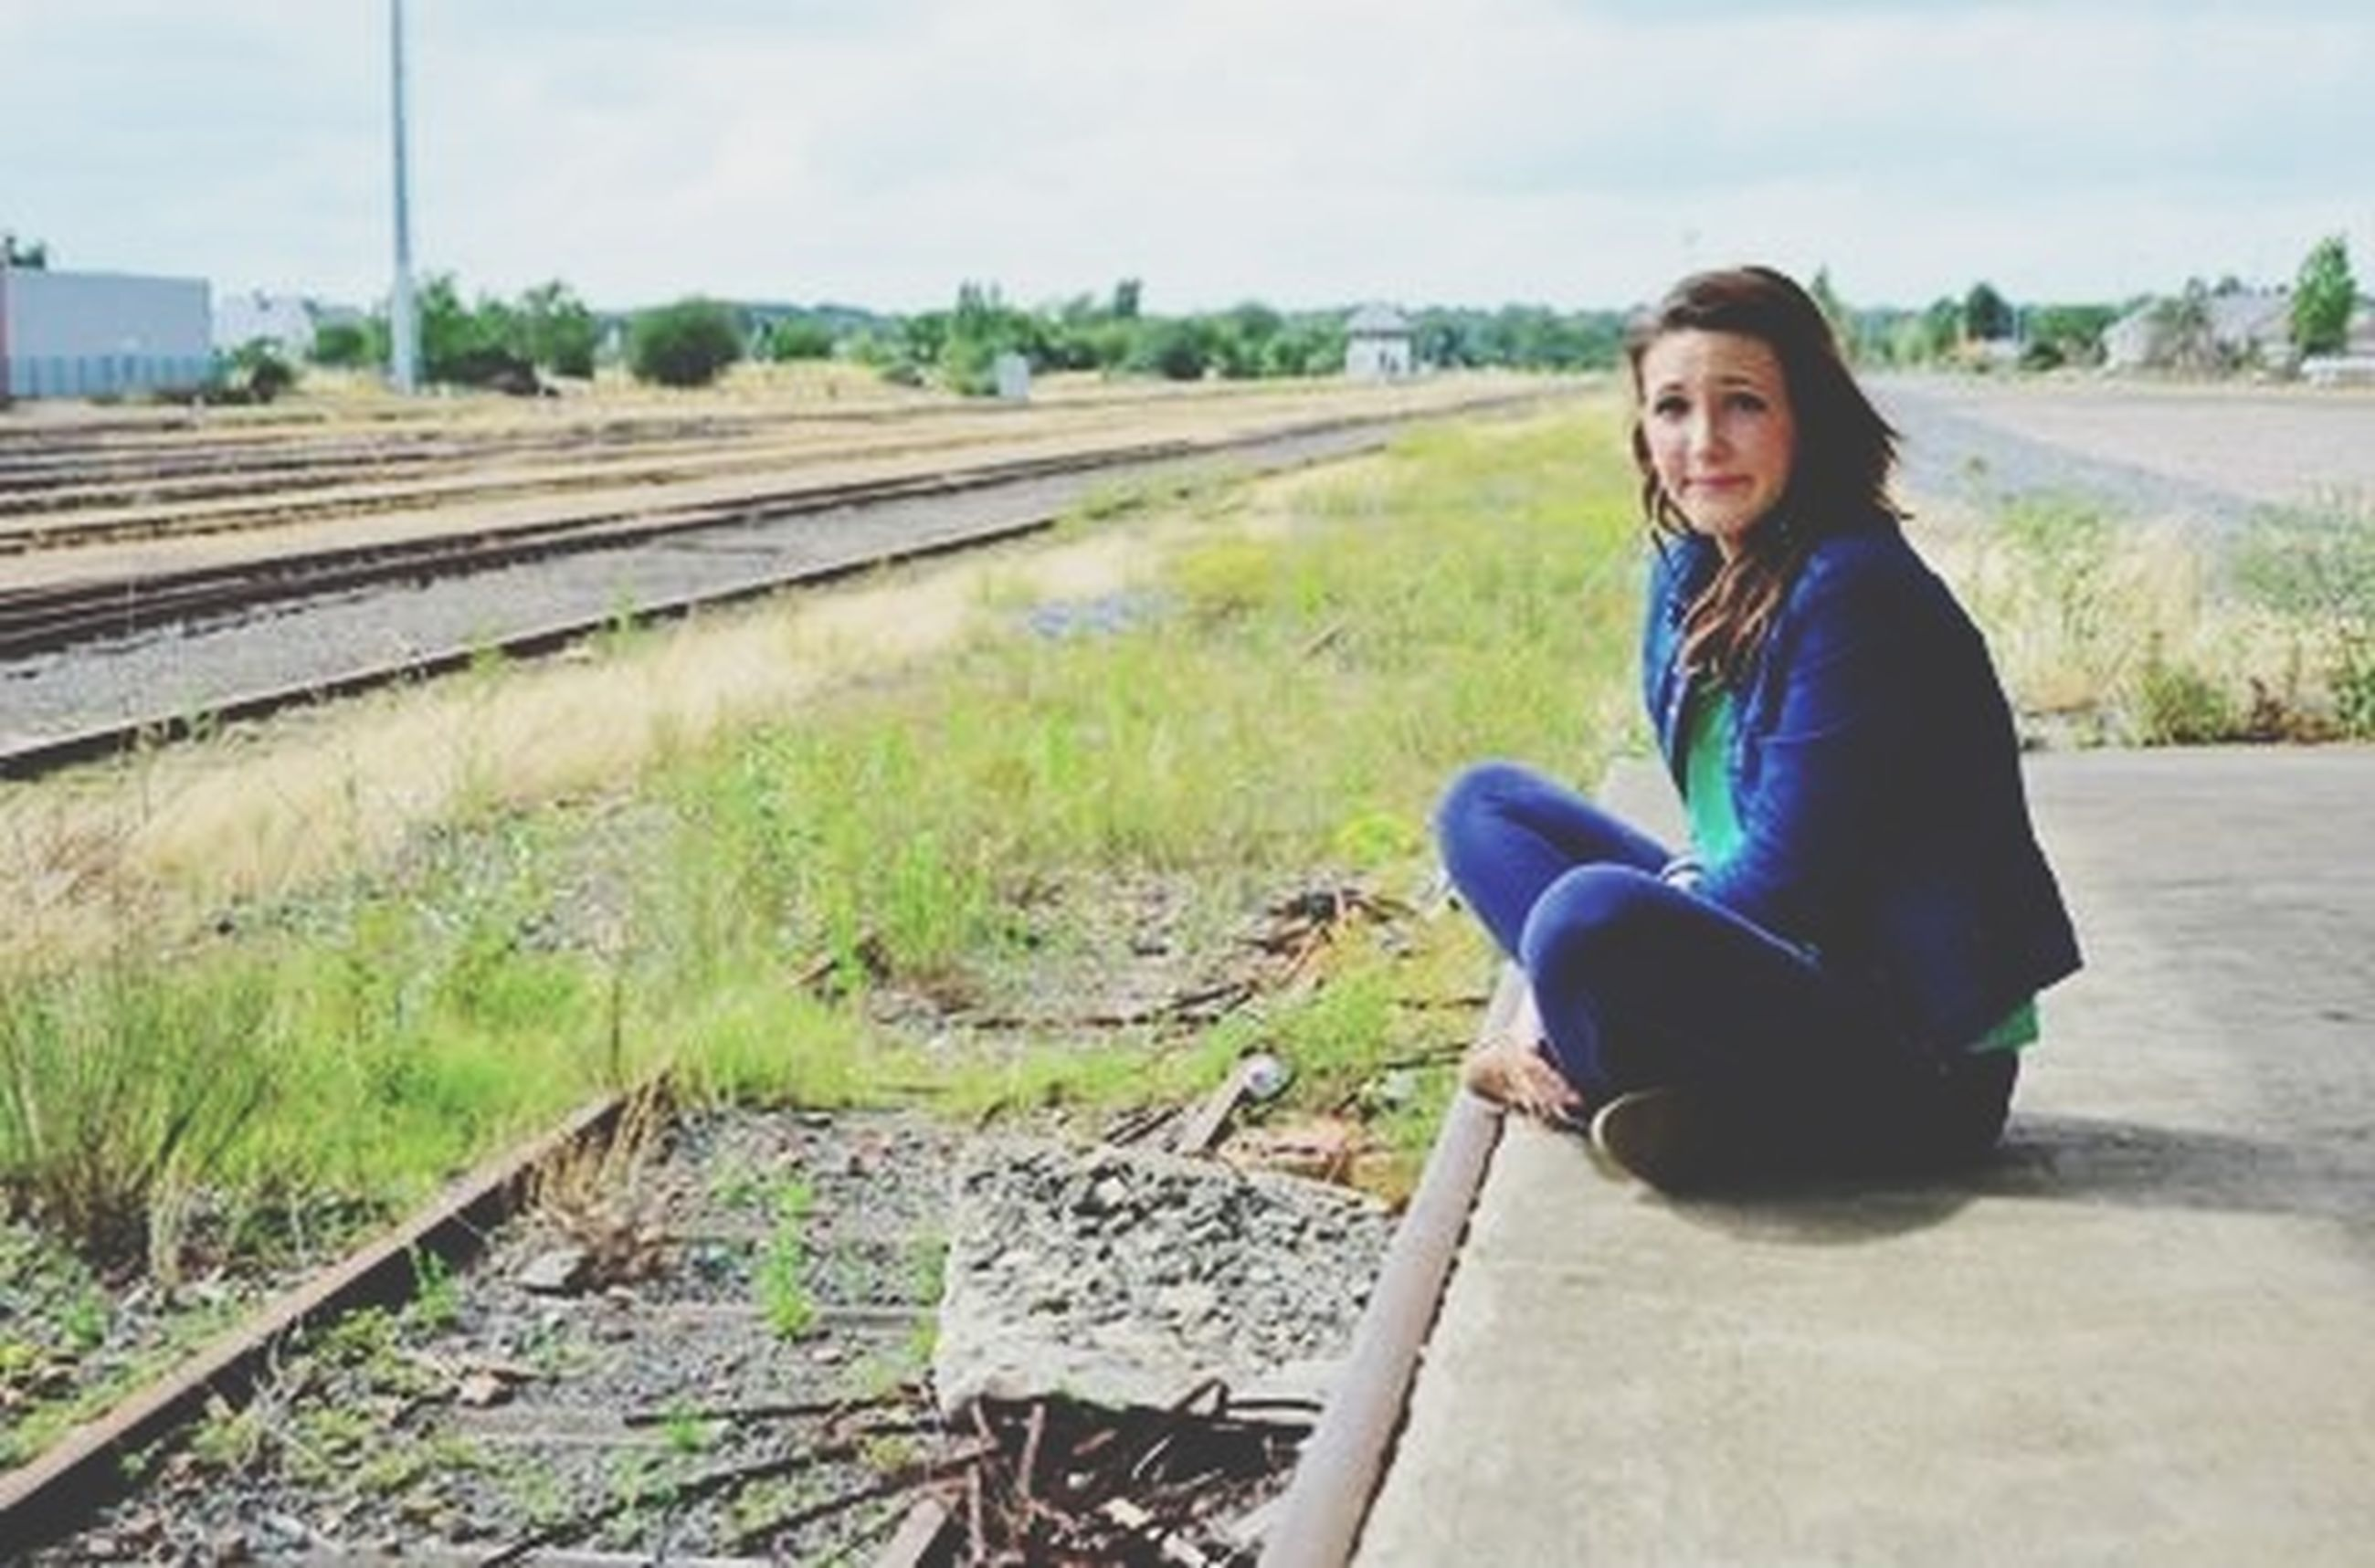 casual clothing, person, lifestyles, young adult, leisure activity, field, portrait, looking at camera, standing, grass, smiling, full length, railroad track, young women, sitting, front view, three quarter length